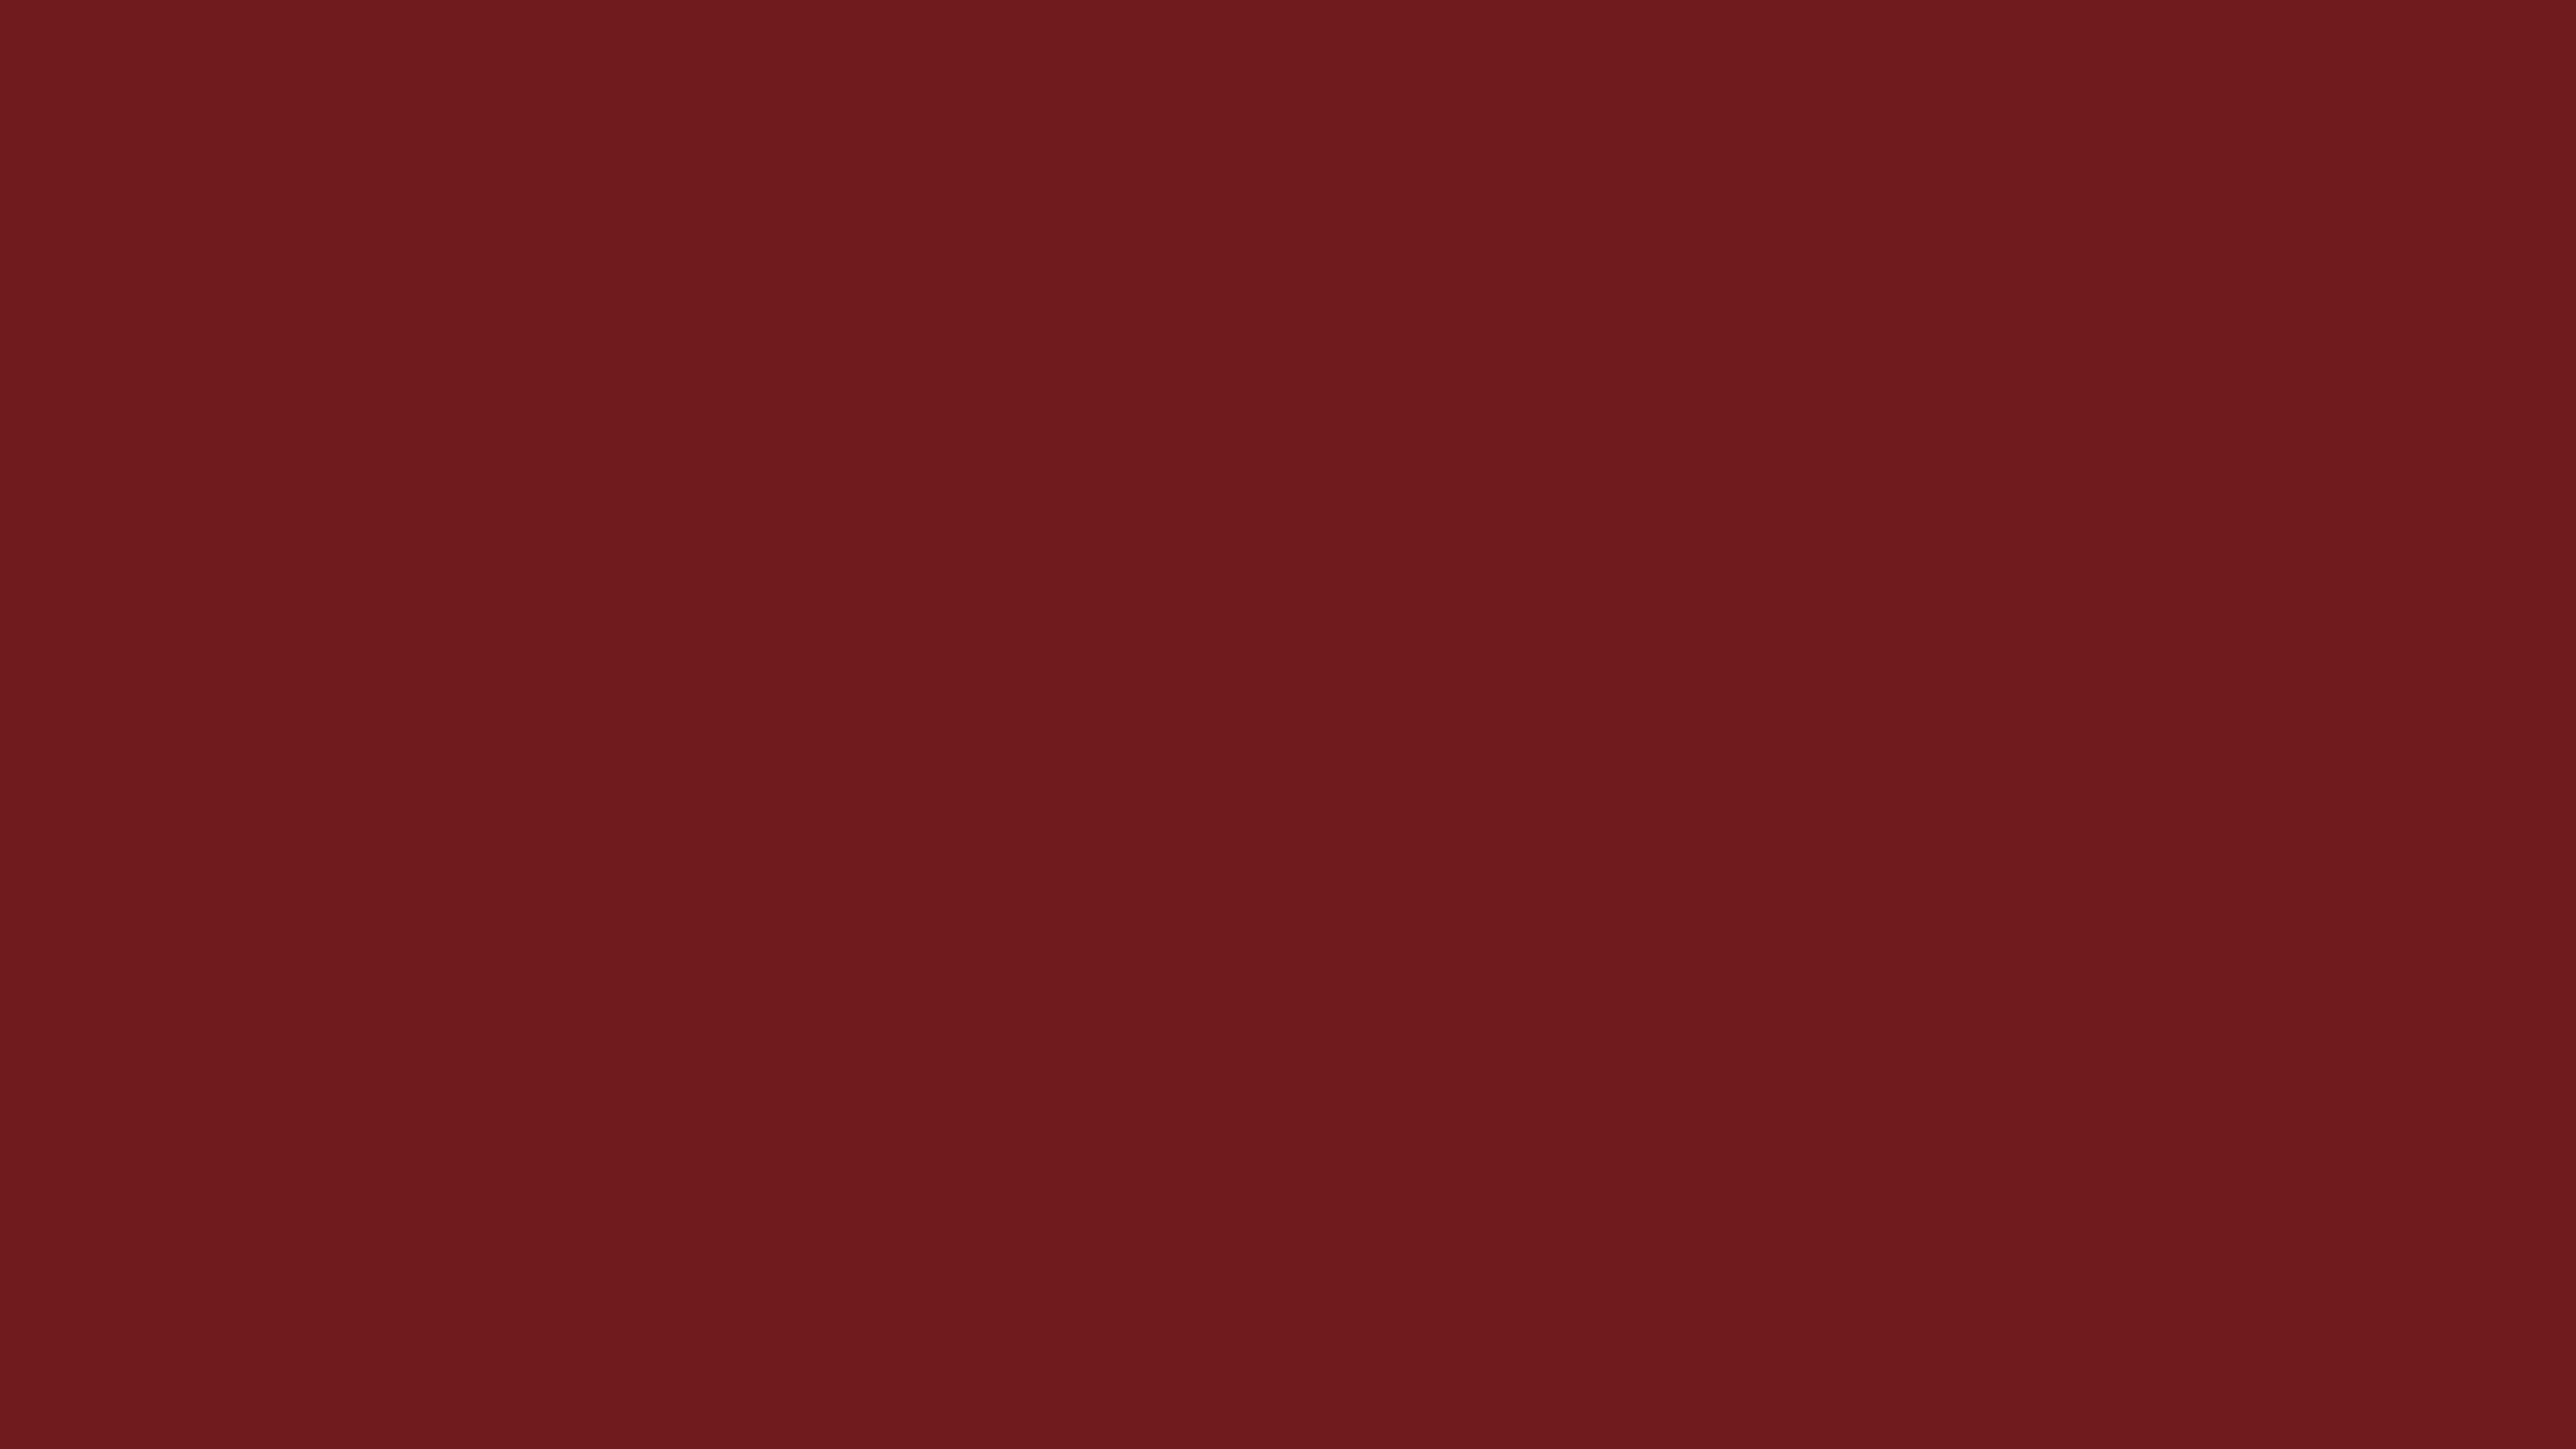 5120x2880 Persian Plum Solid Color Background